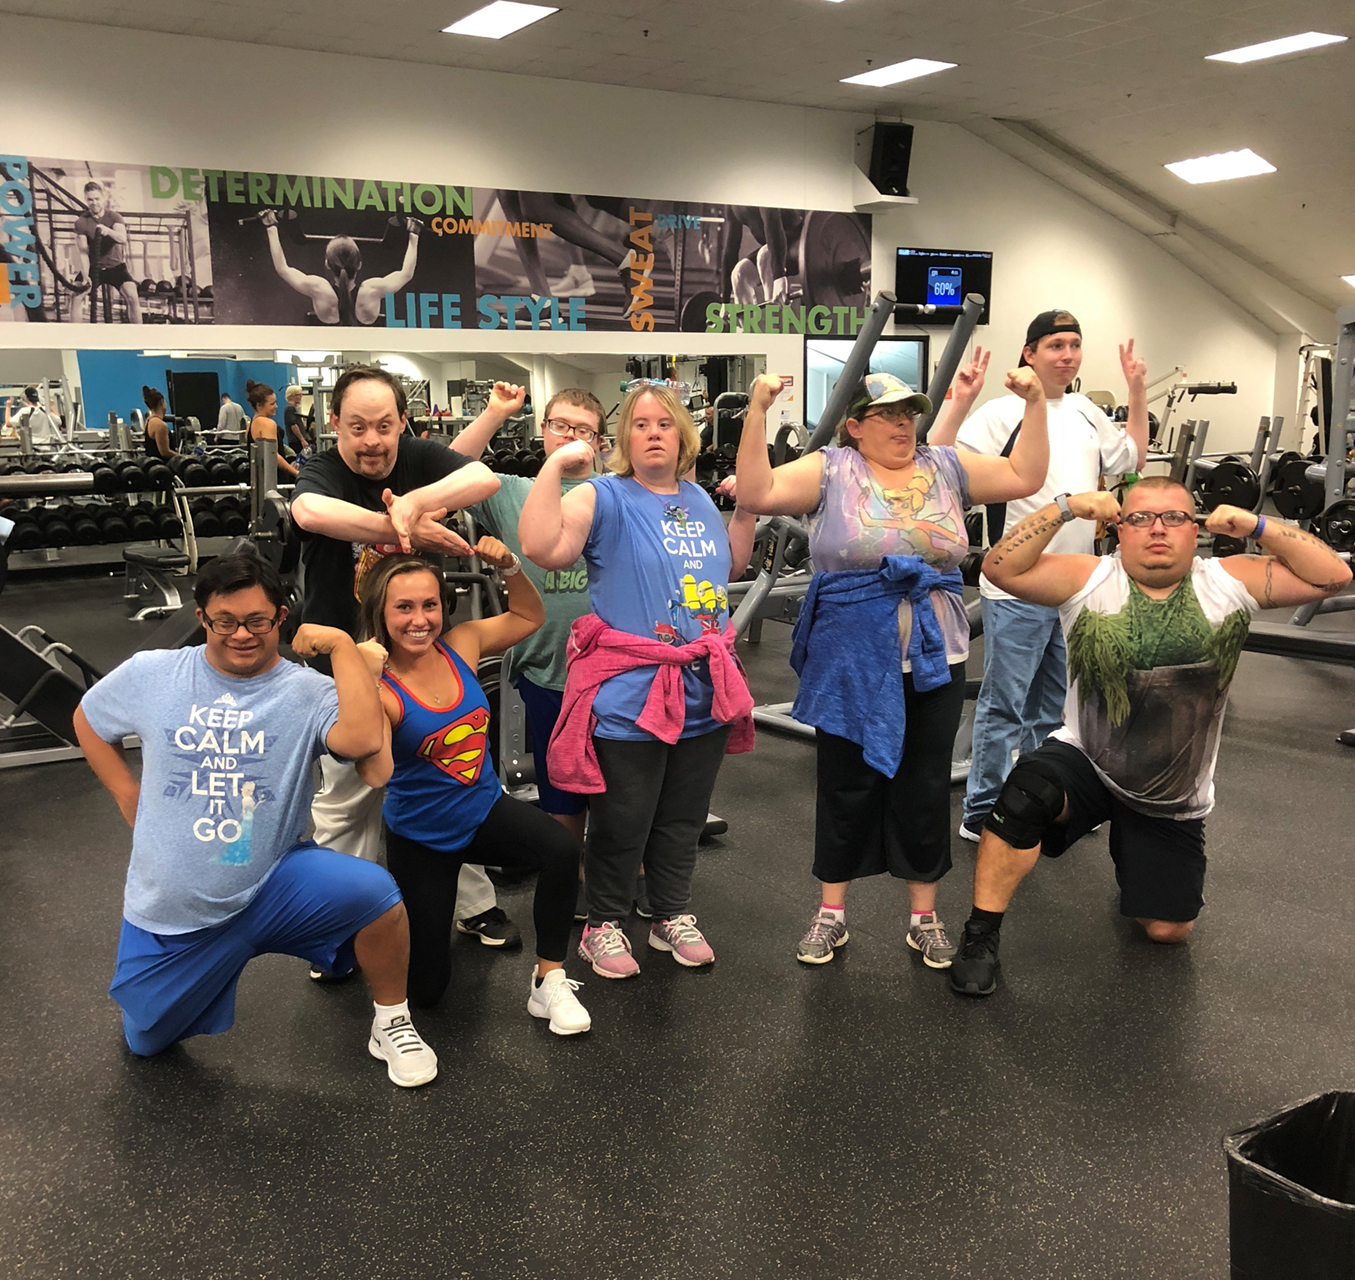 Athletes flex their muscles during a SOMIfit class